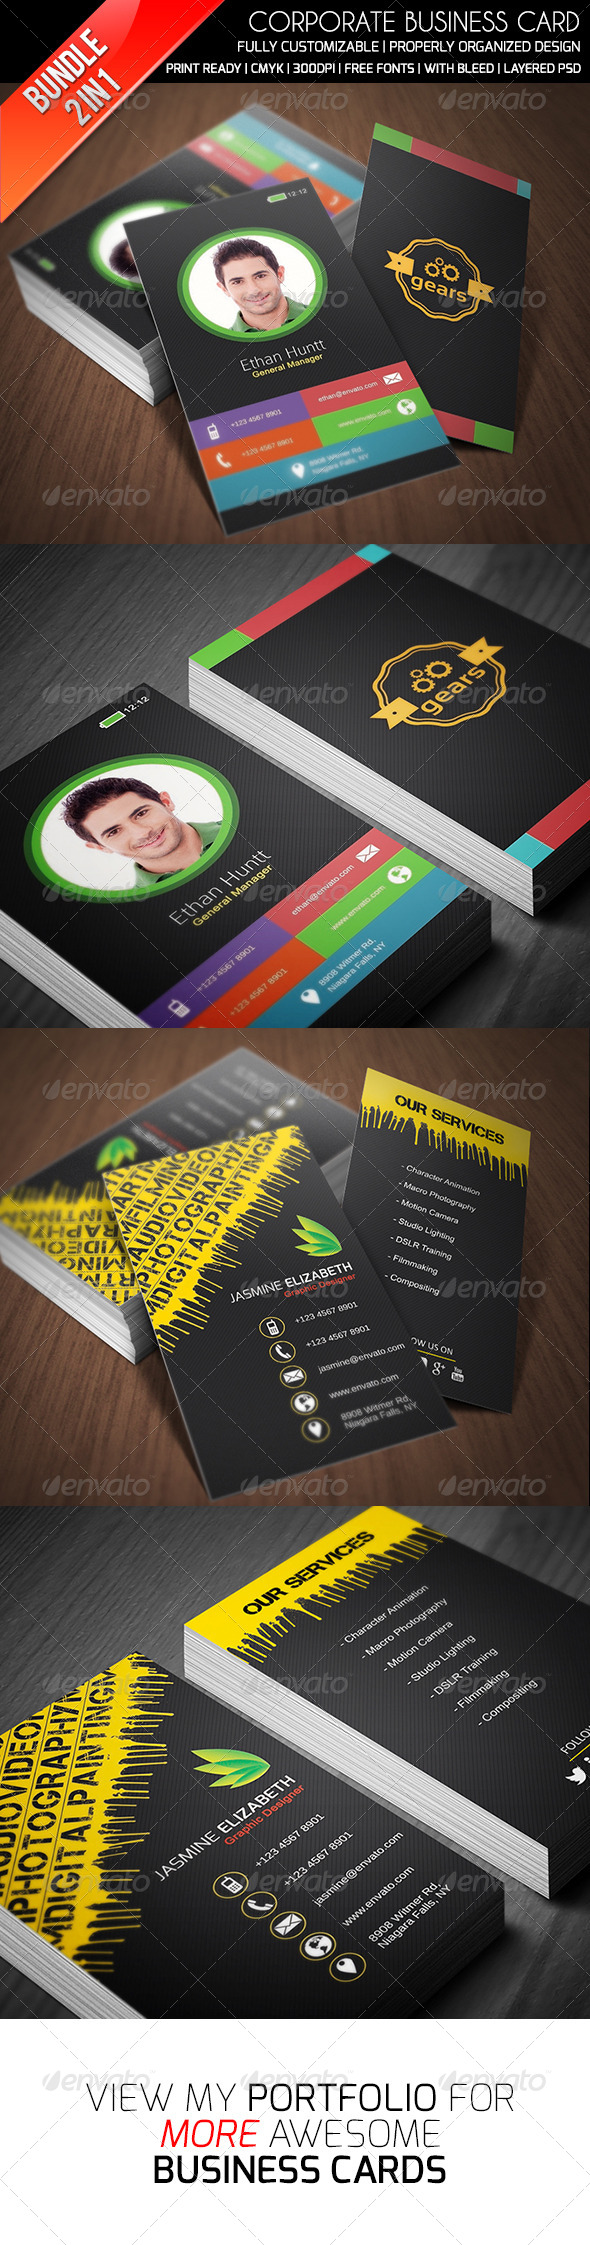 GraphicRiver Ethanfx Business Card Bundle Vol 3 8426946